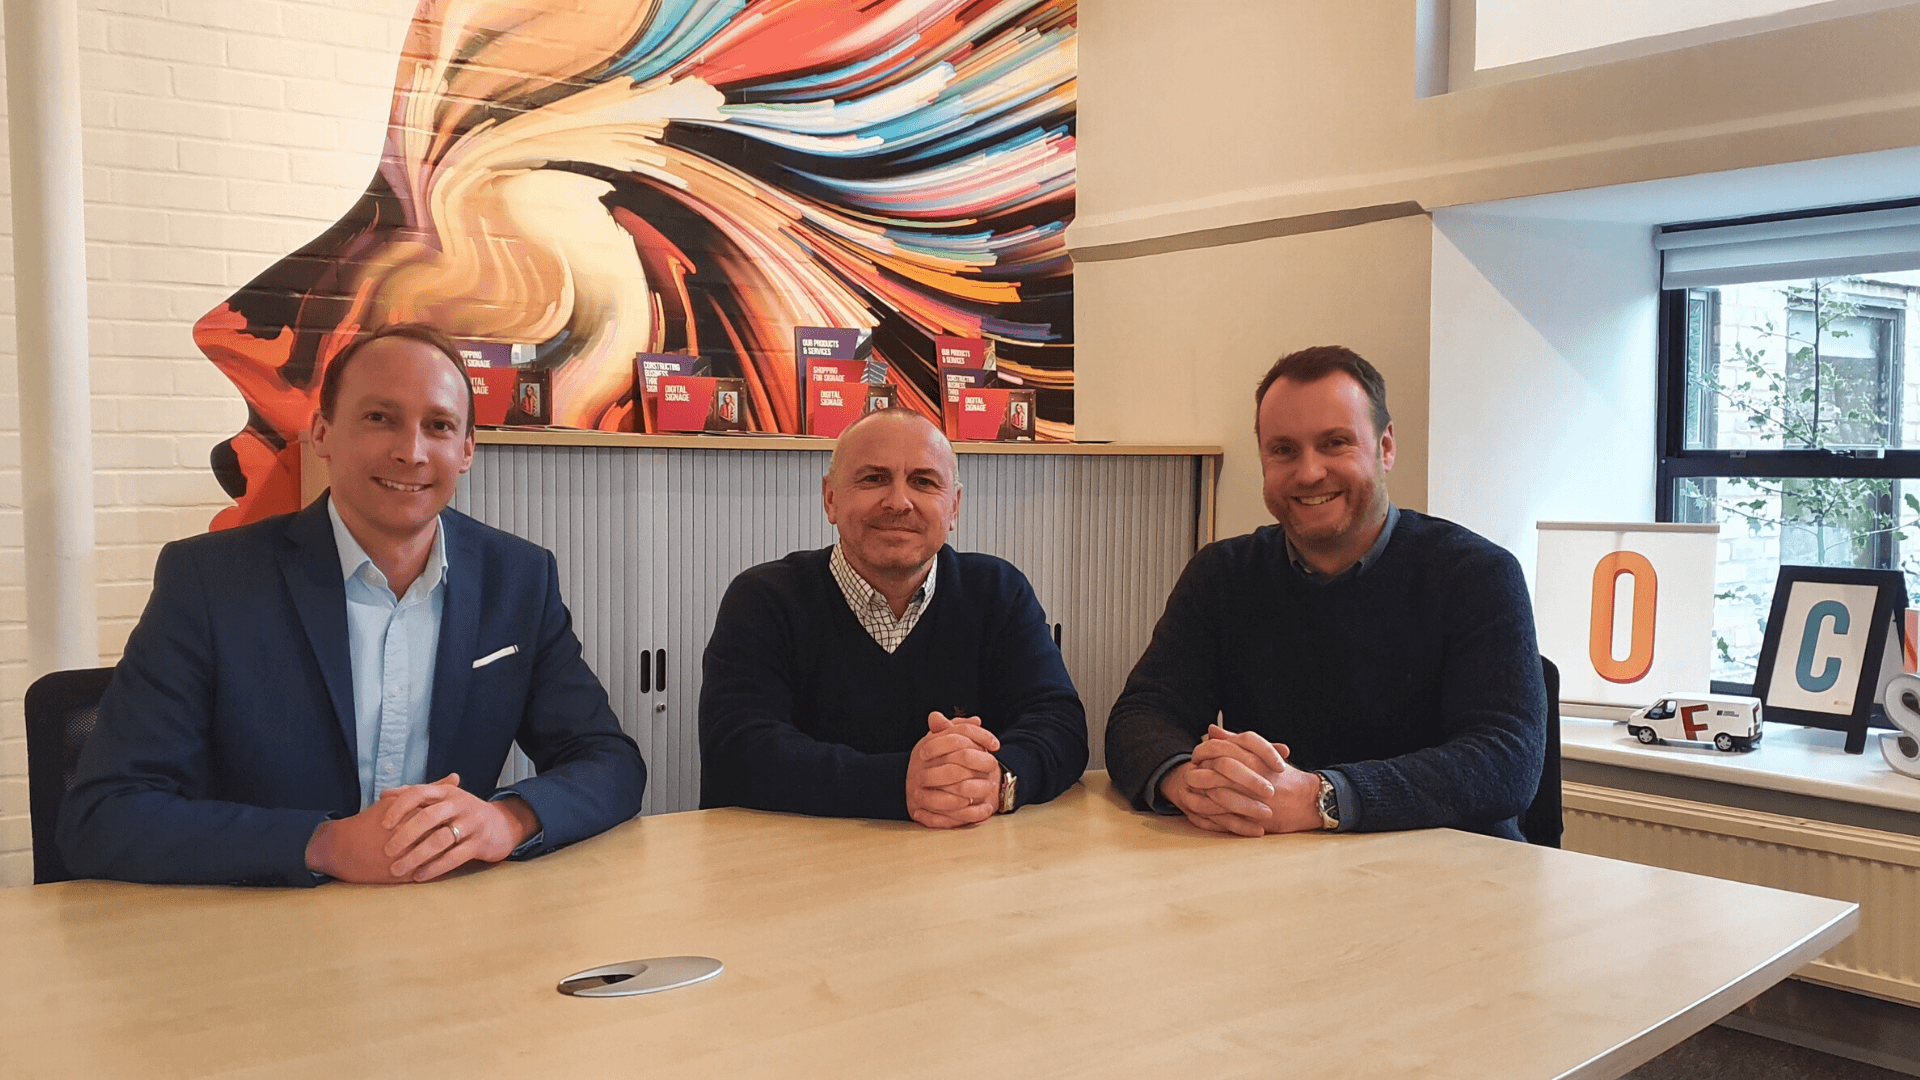 New owner welcomed at Signs Express (Lancaster)